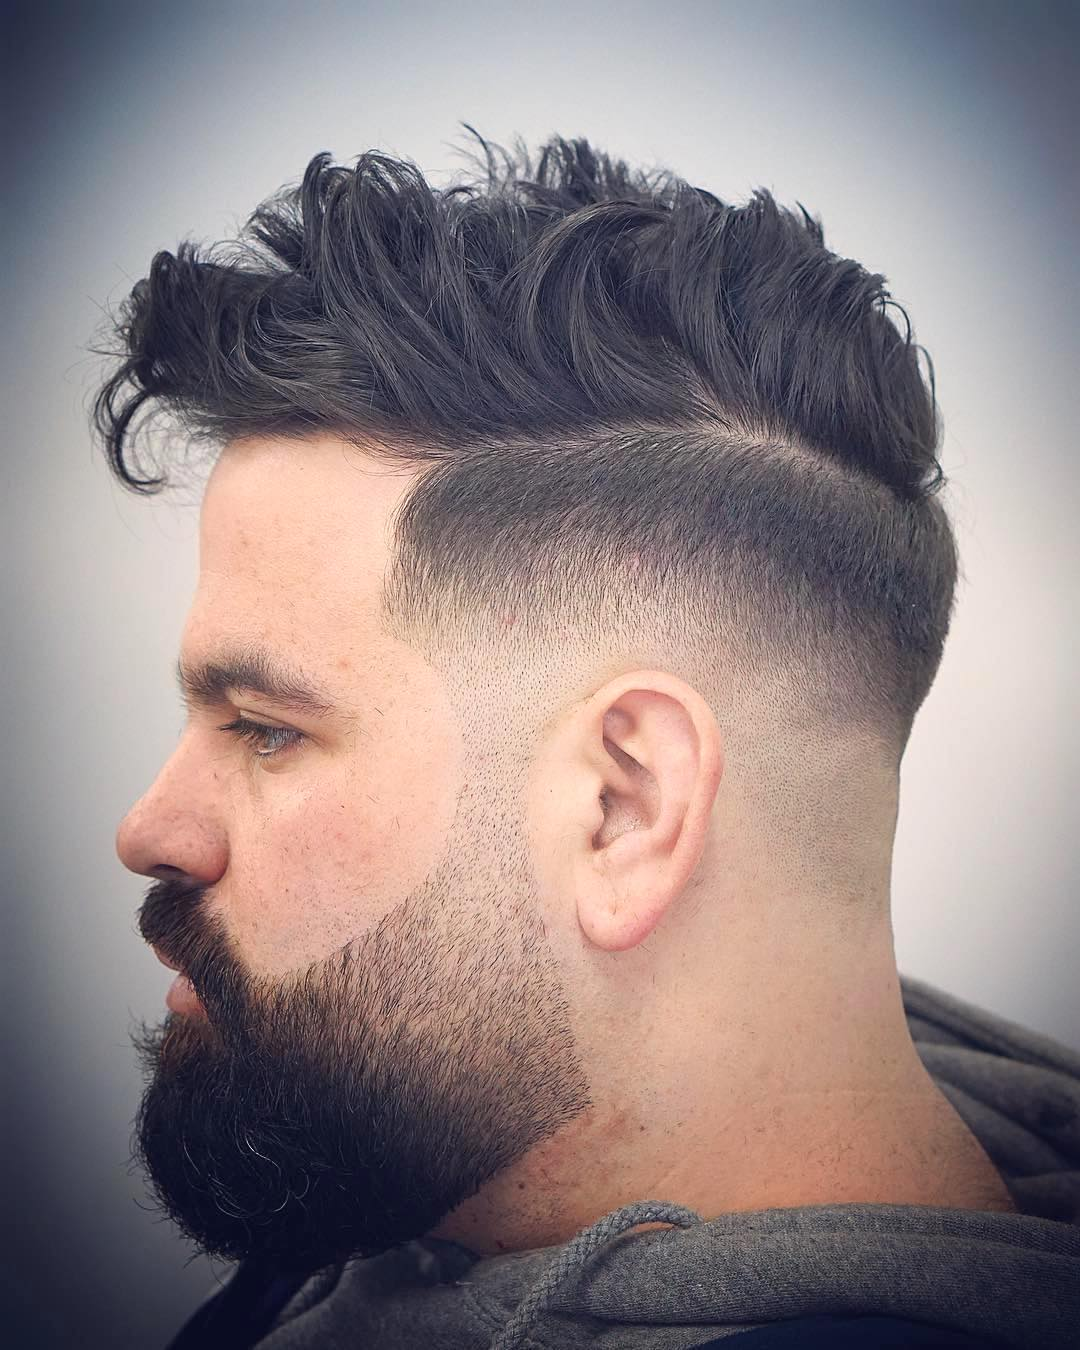 25+ Men's Haircuts + Cool Hairstyles (2020 Update